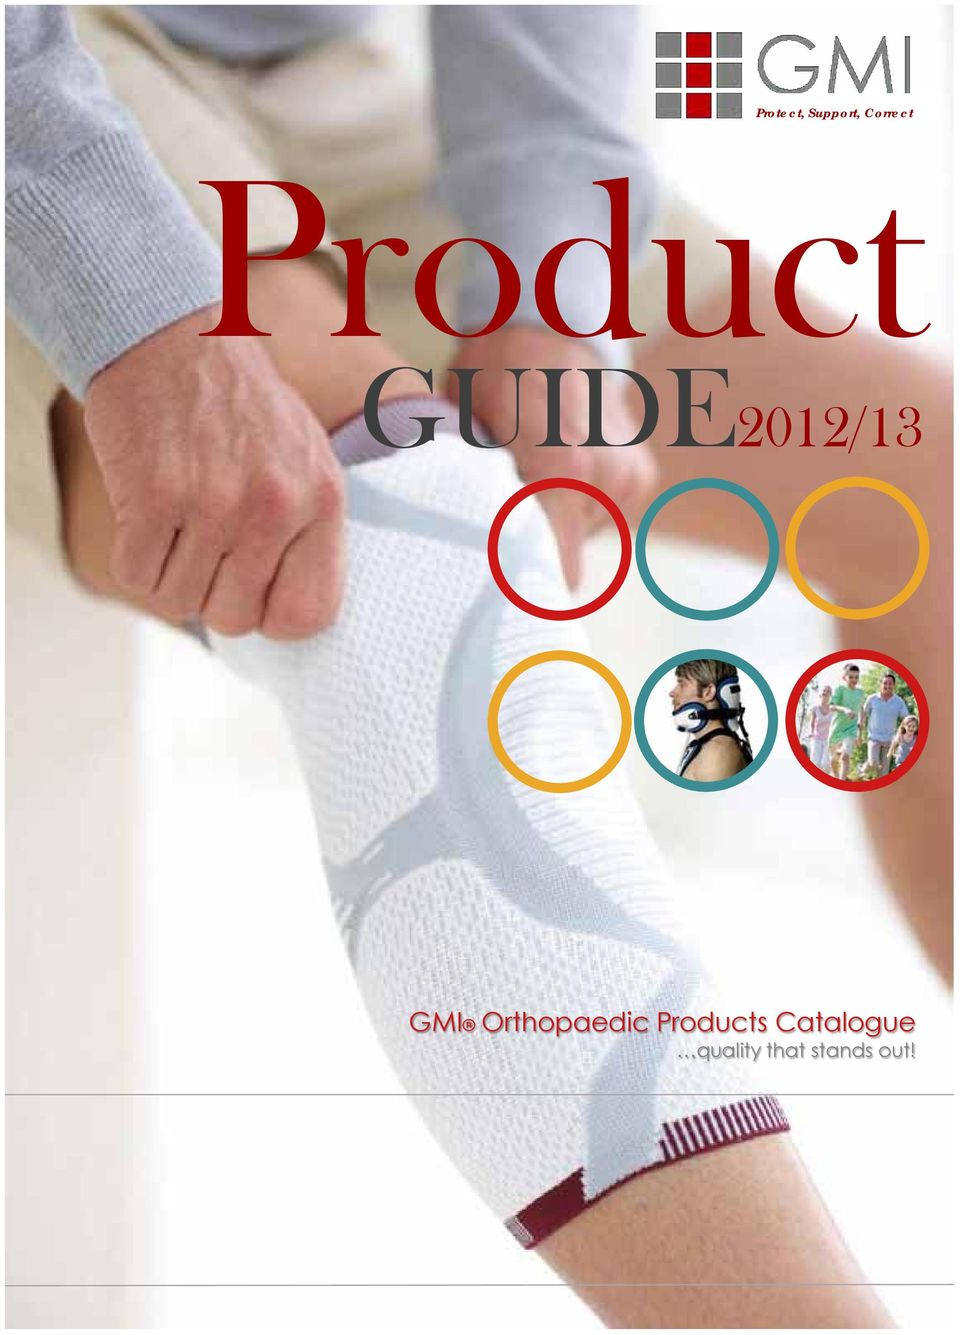 Orthopaedic Products